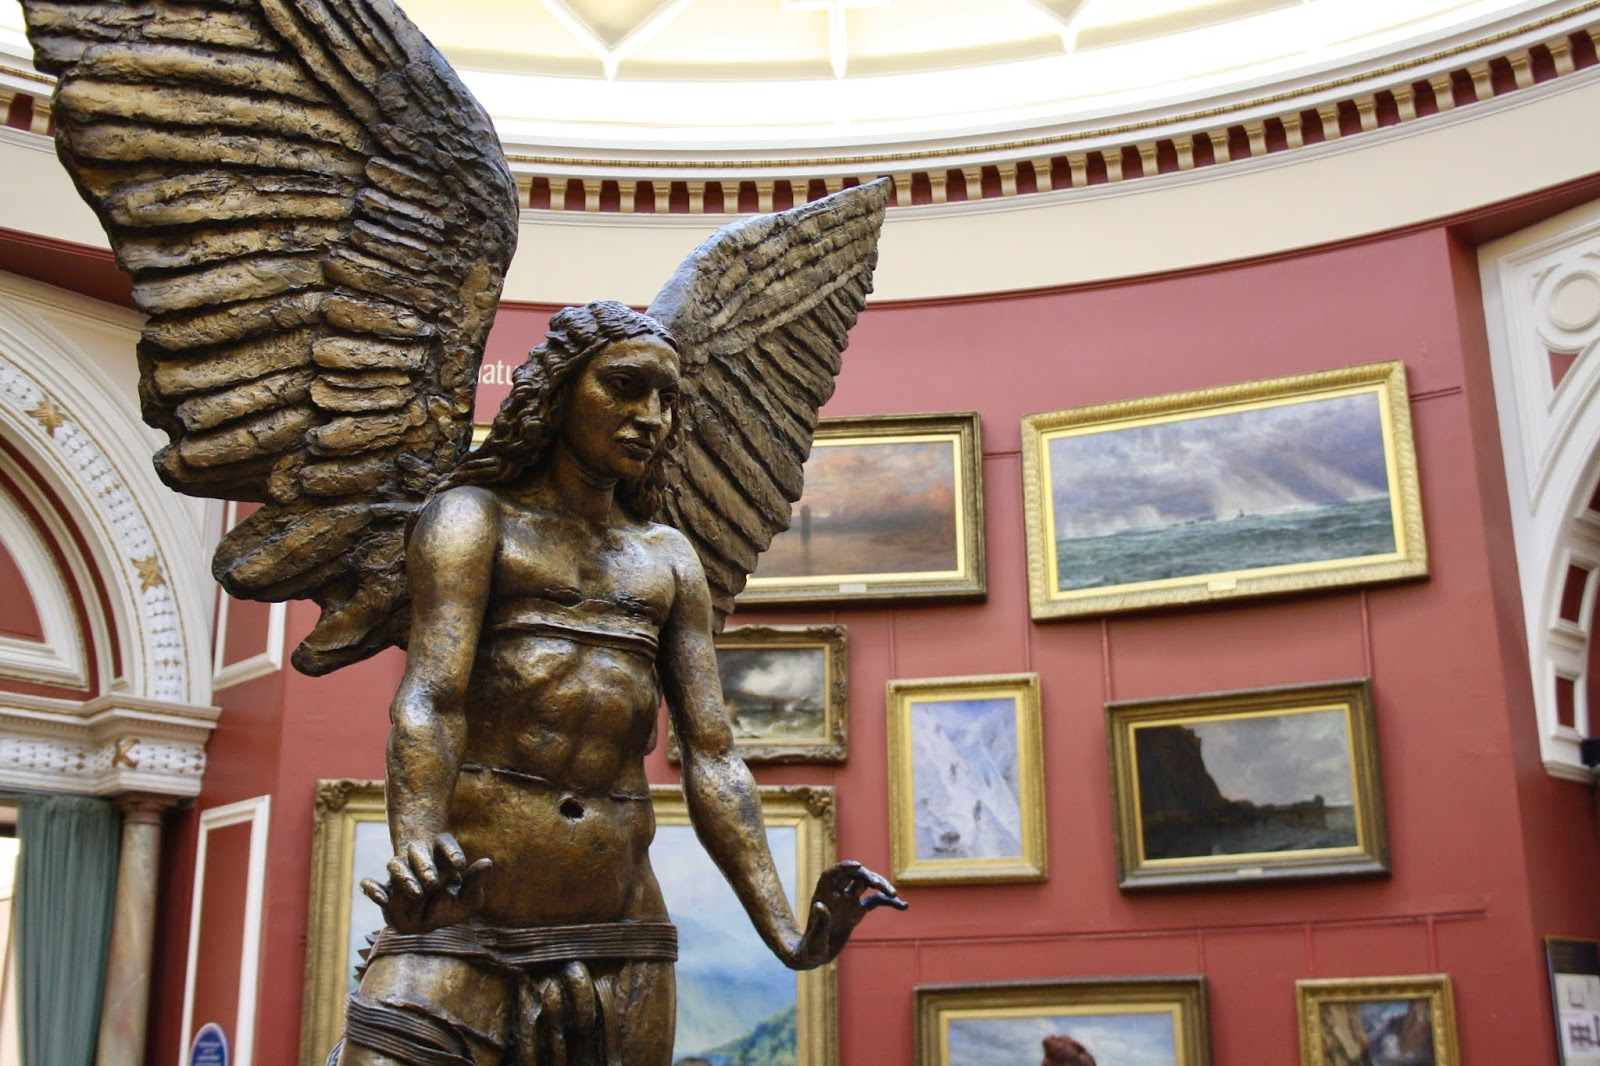 A Sir Jacob Epstein sculpture named Lucifer at the Birmingham Museum and Art Gallery